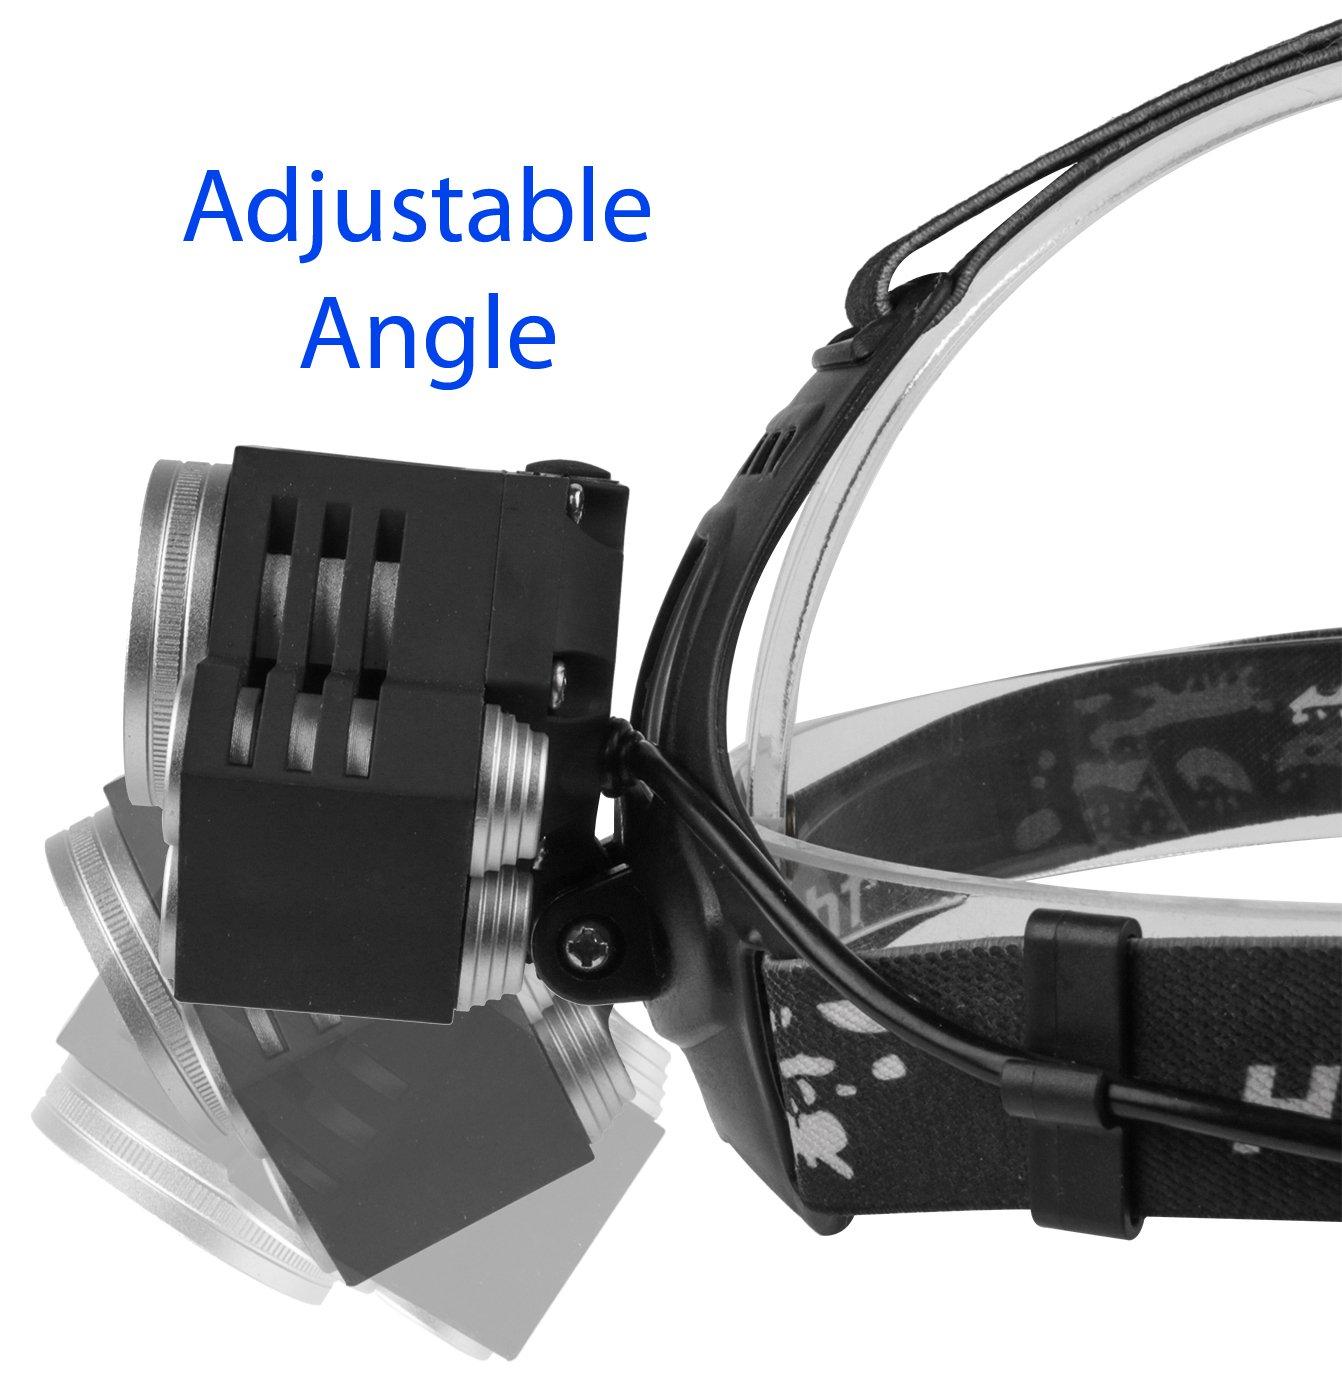 LED Head Torch Headlight. 5 Super Bright T6 Bulb Headlamp. Comfortable, Lightweight and Water resistant. Ideal for Running, Dog Walking, Fishing, Camping and Reading. Rechargeable Batteries Included 2